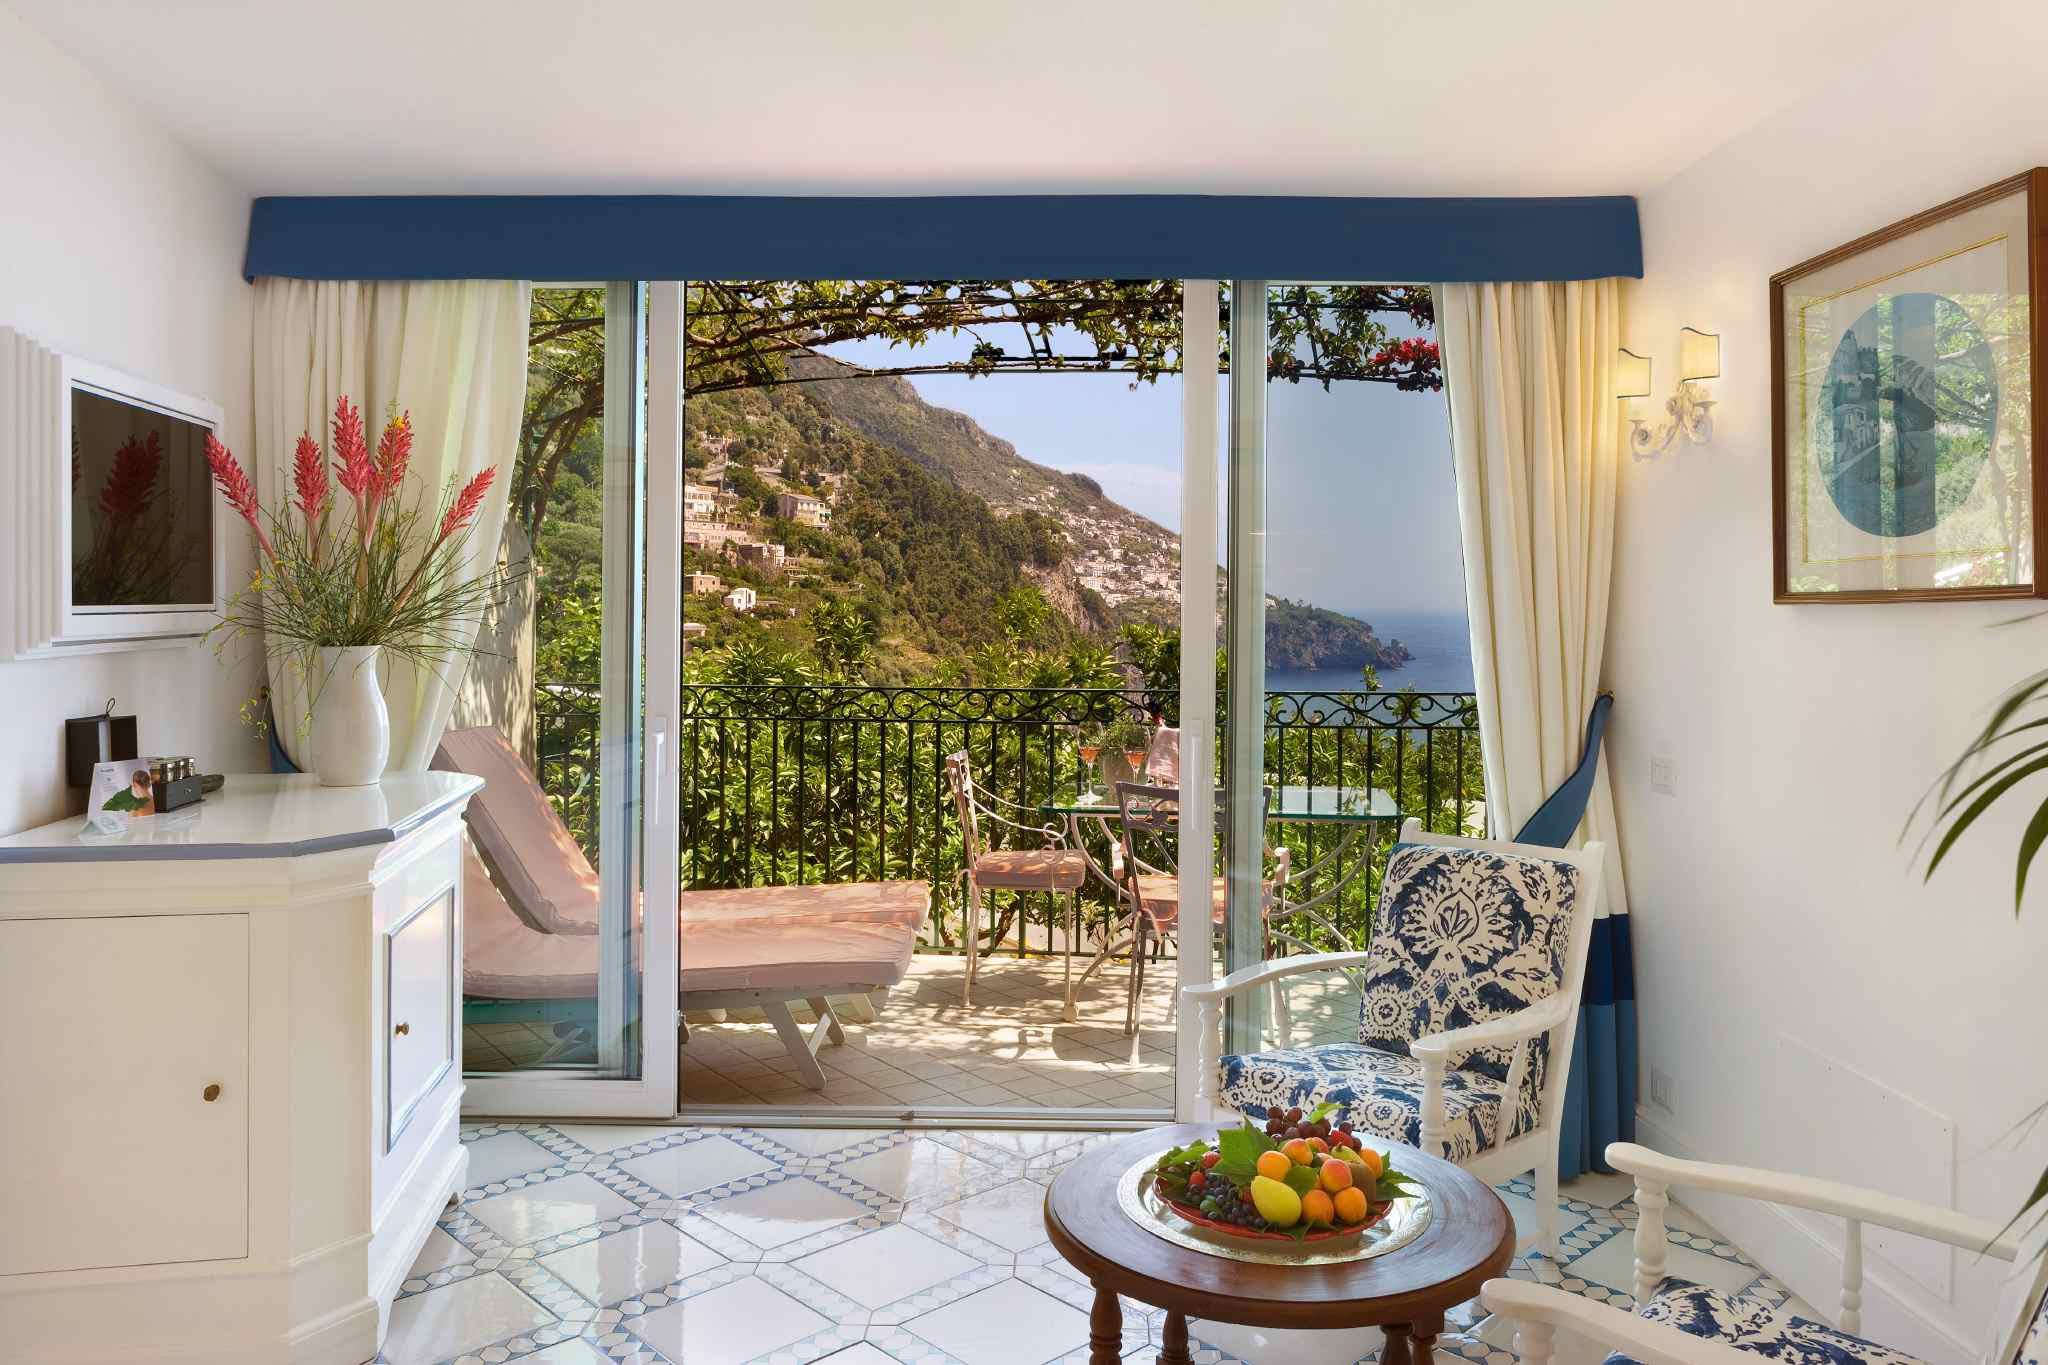 Deluxe room at il san pietro positano